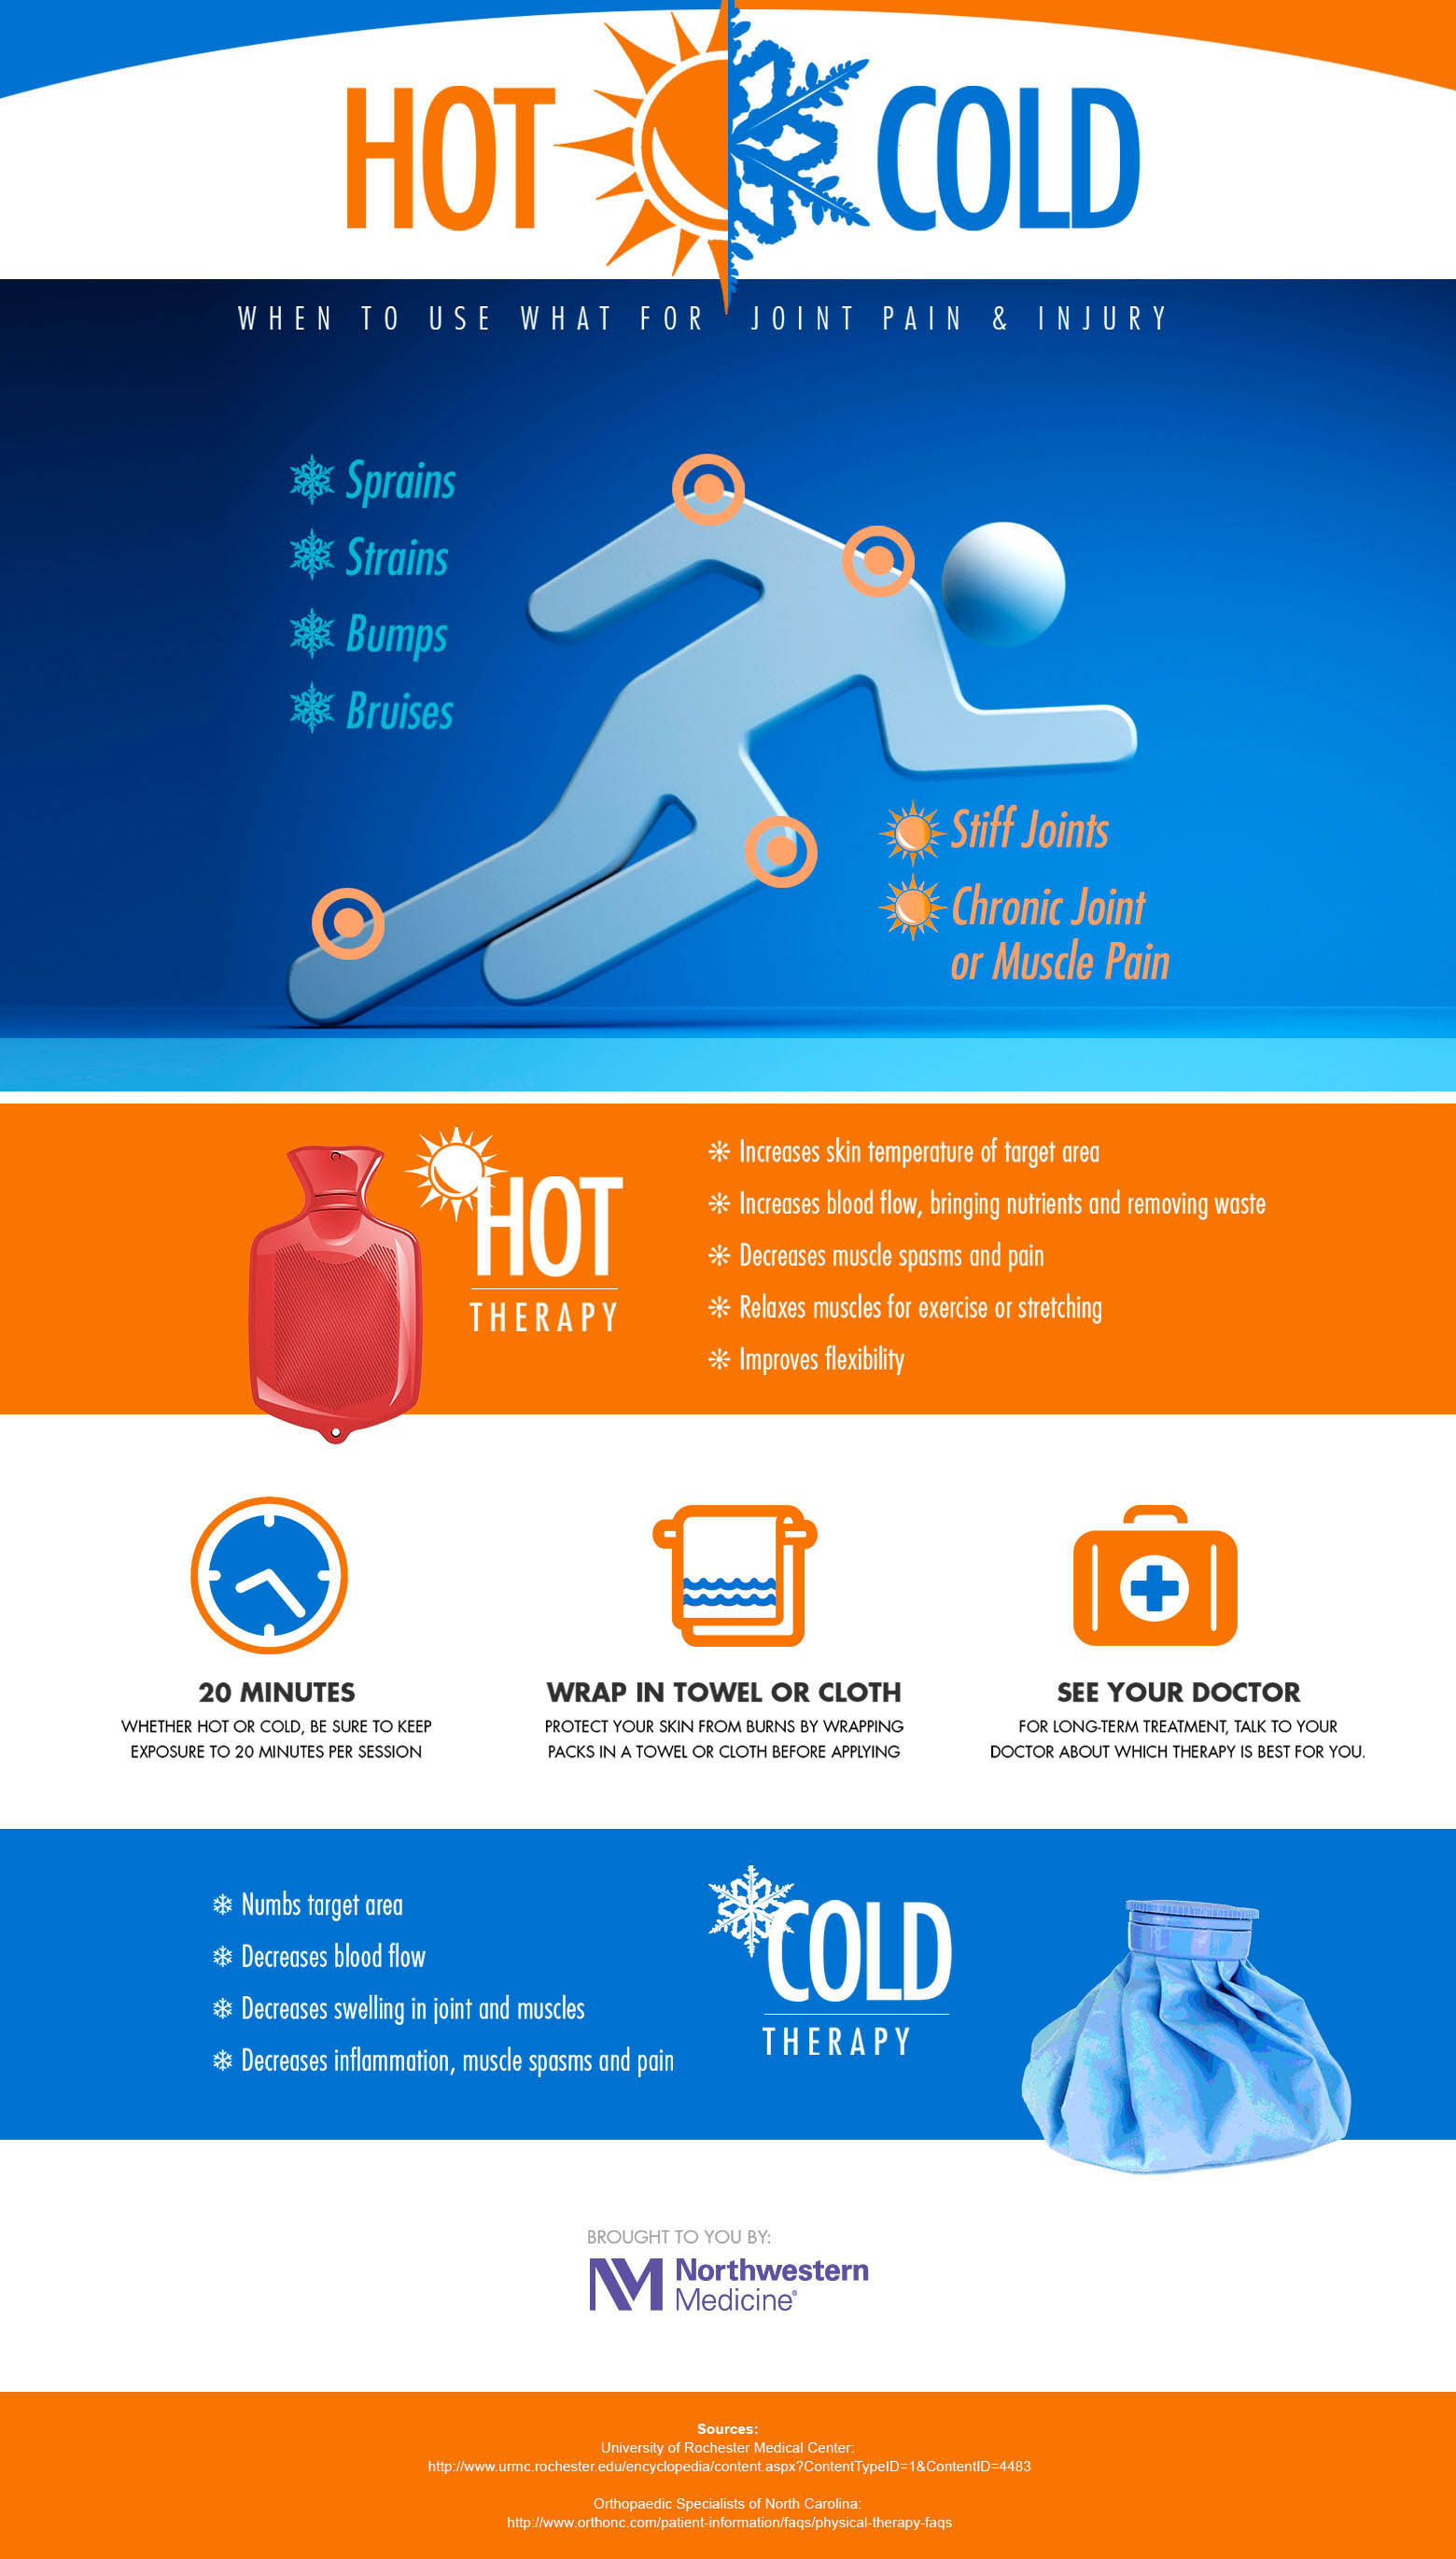 hot vs cold therapy for joint pain infographic